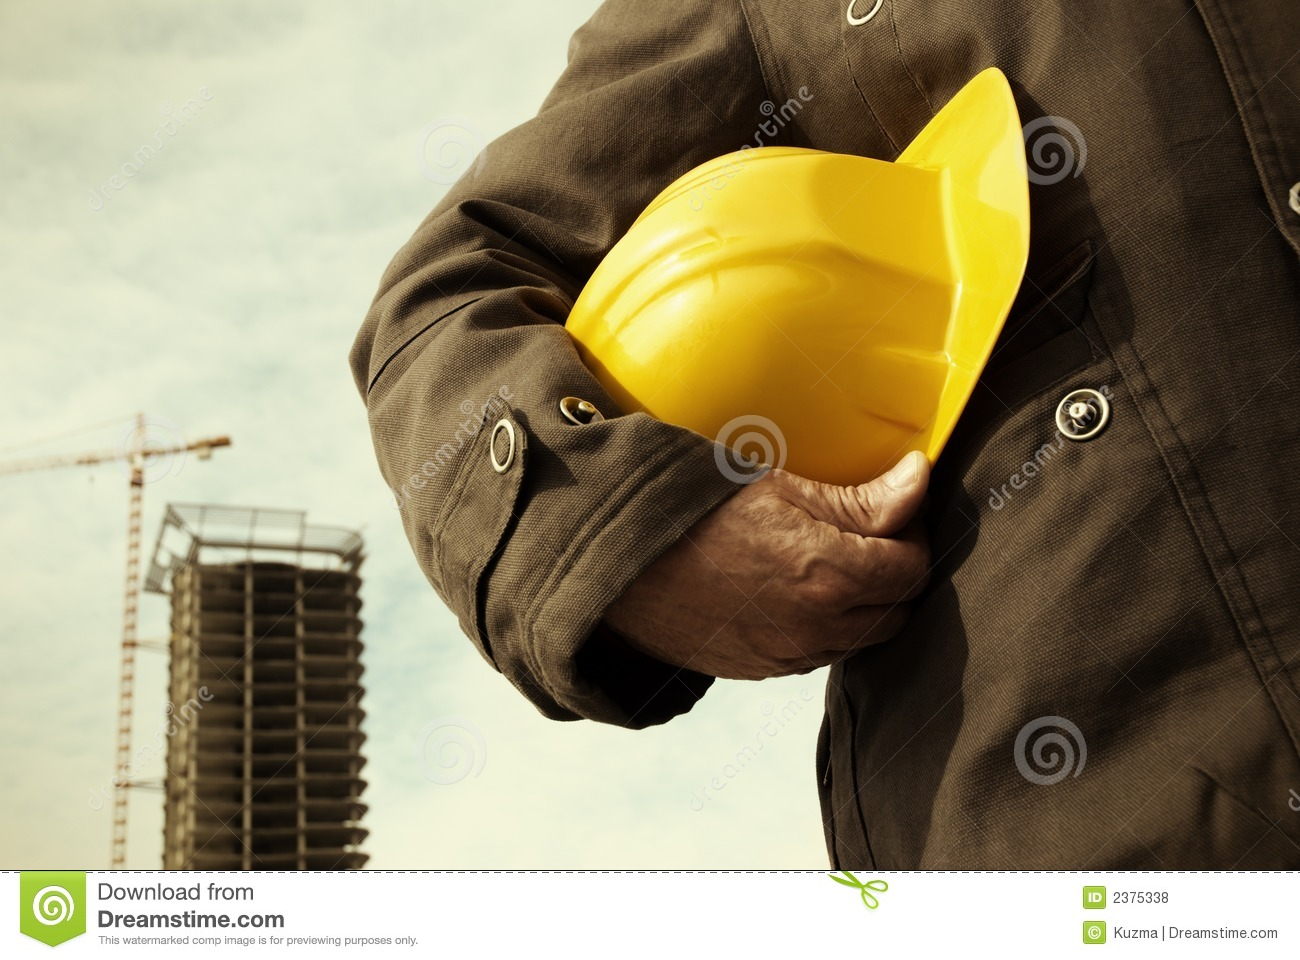 Construction Pictures - Free Images of Construction - Royalty Free Royalty free construction photos